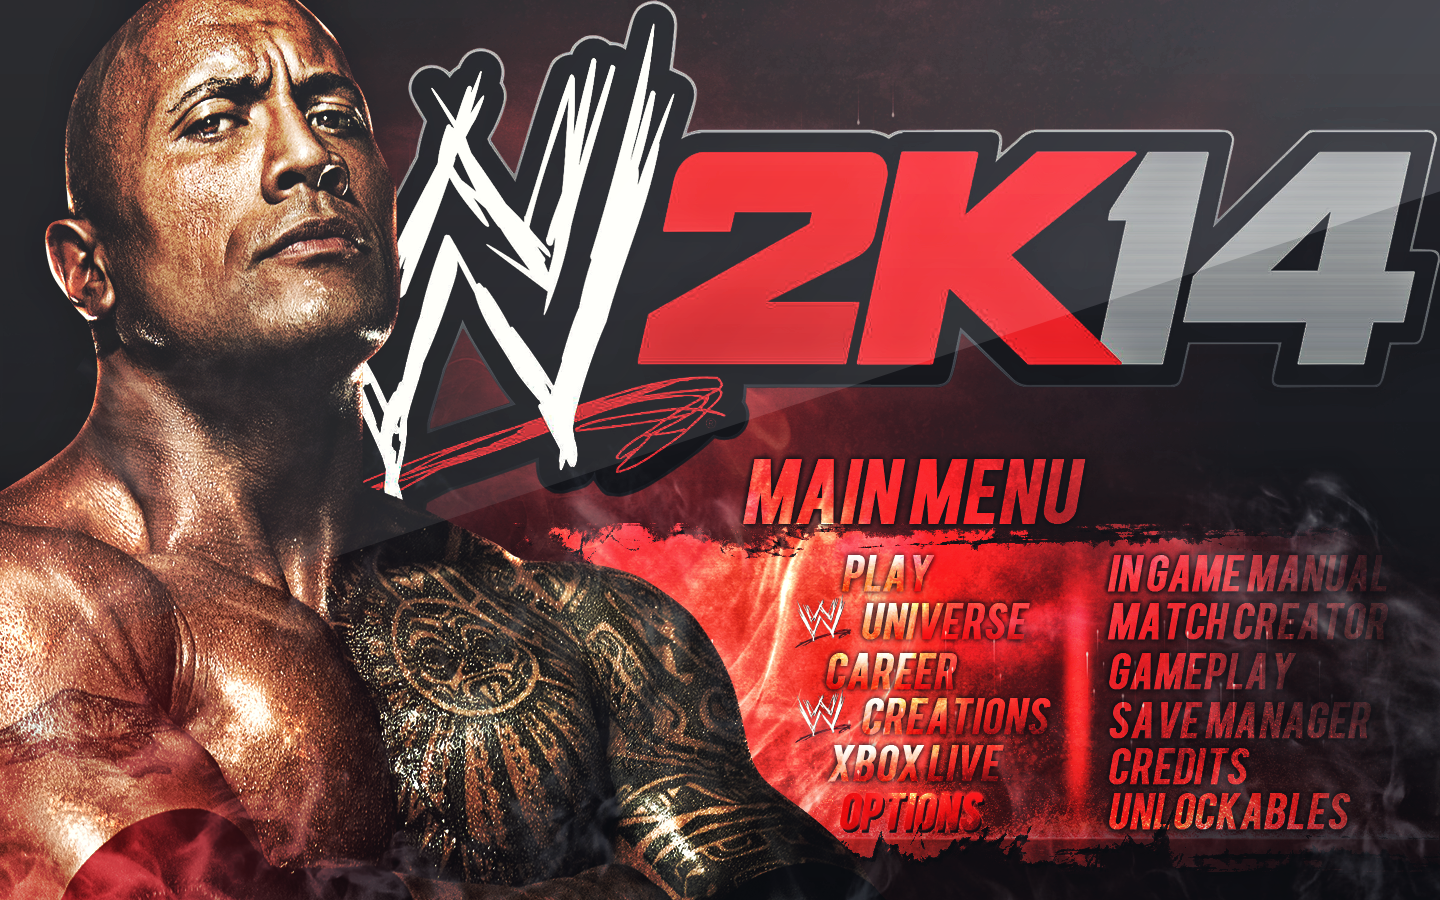 free download wwe 2k14 game for pc - full version of wwe 2k14: free